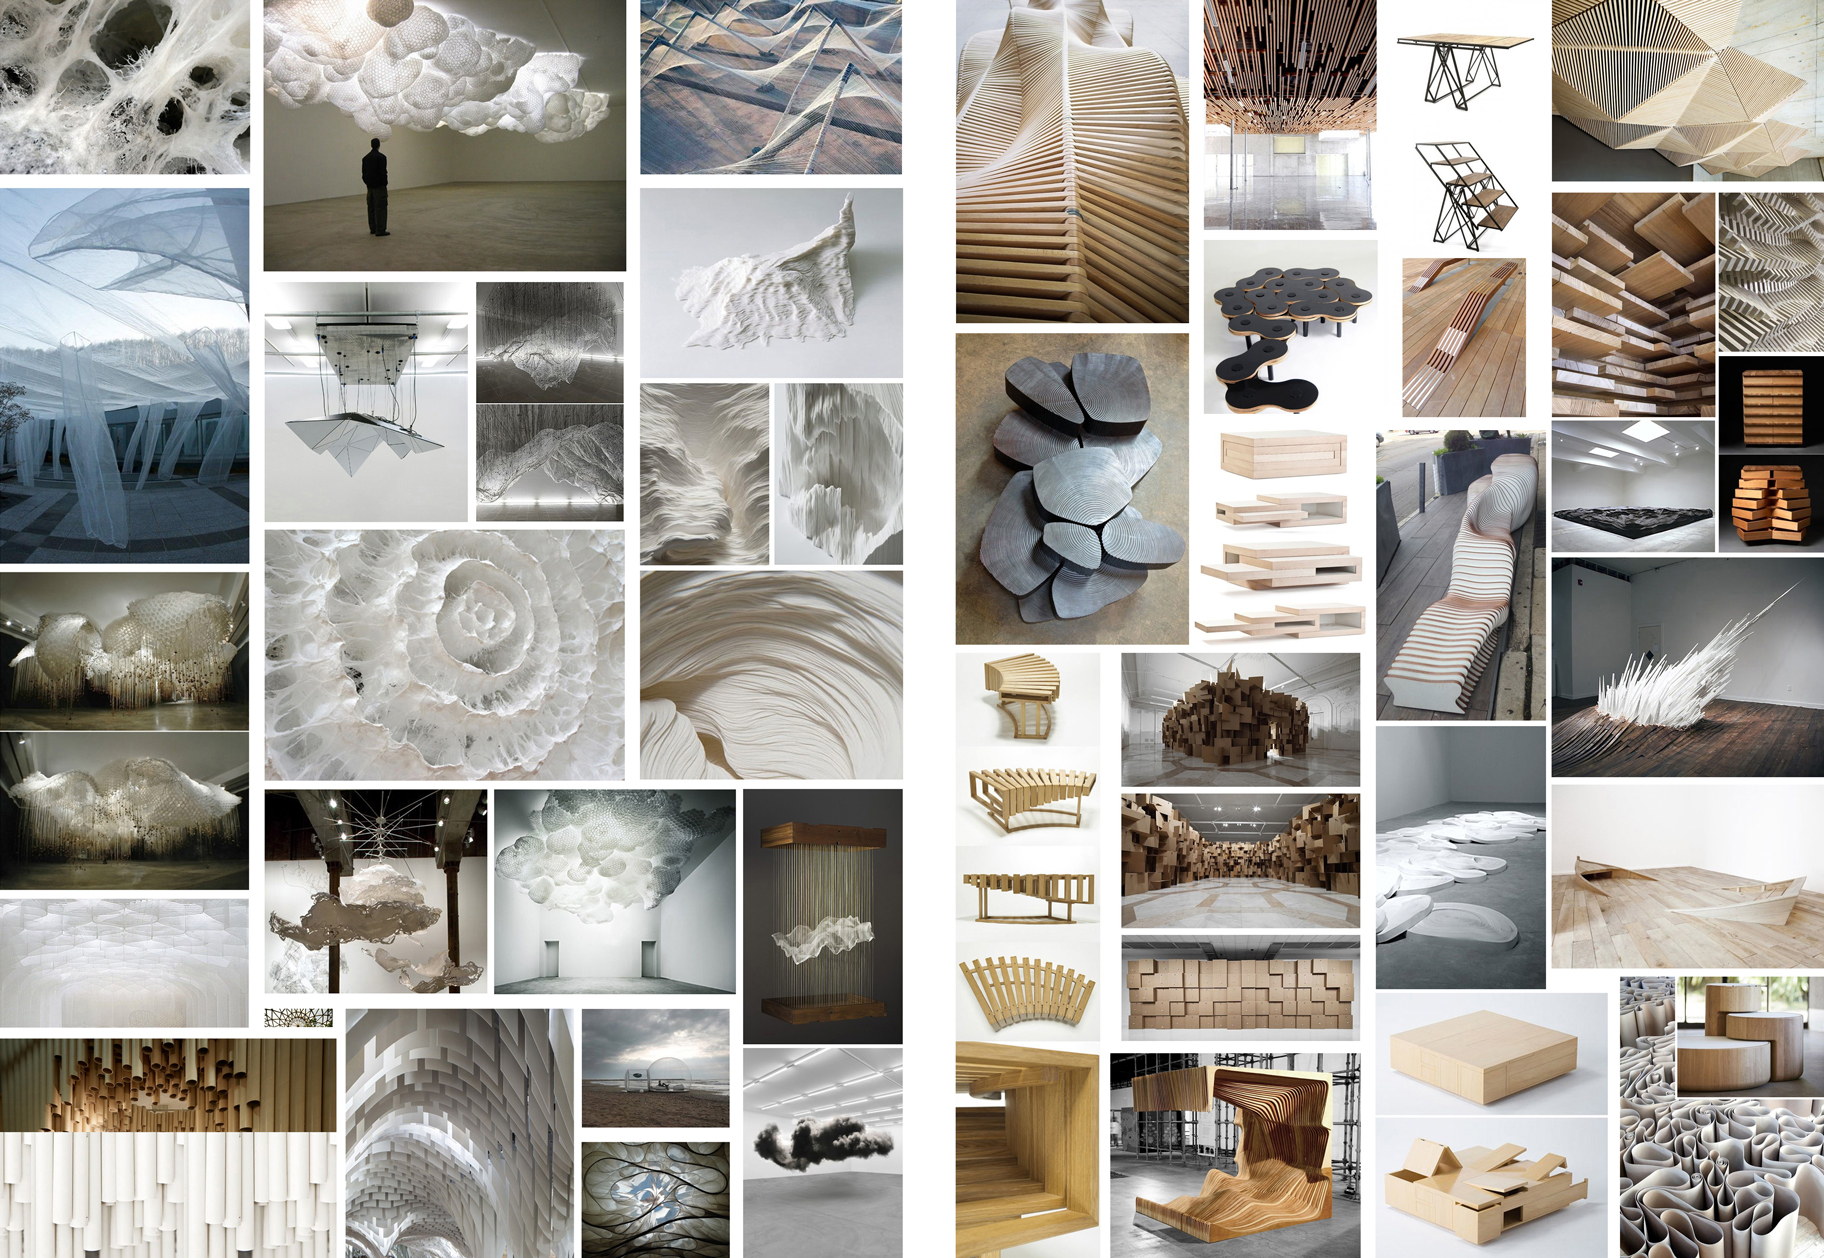 Visual research for suspended set element and transformable construction at the stage floor, various designers and artists